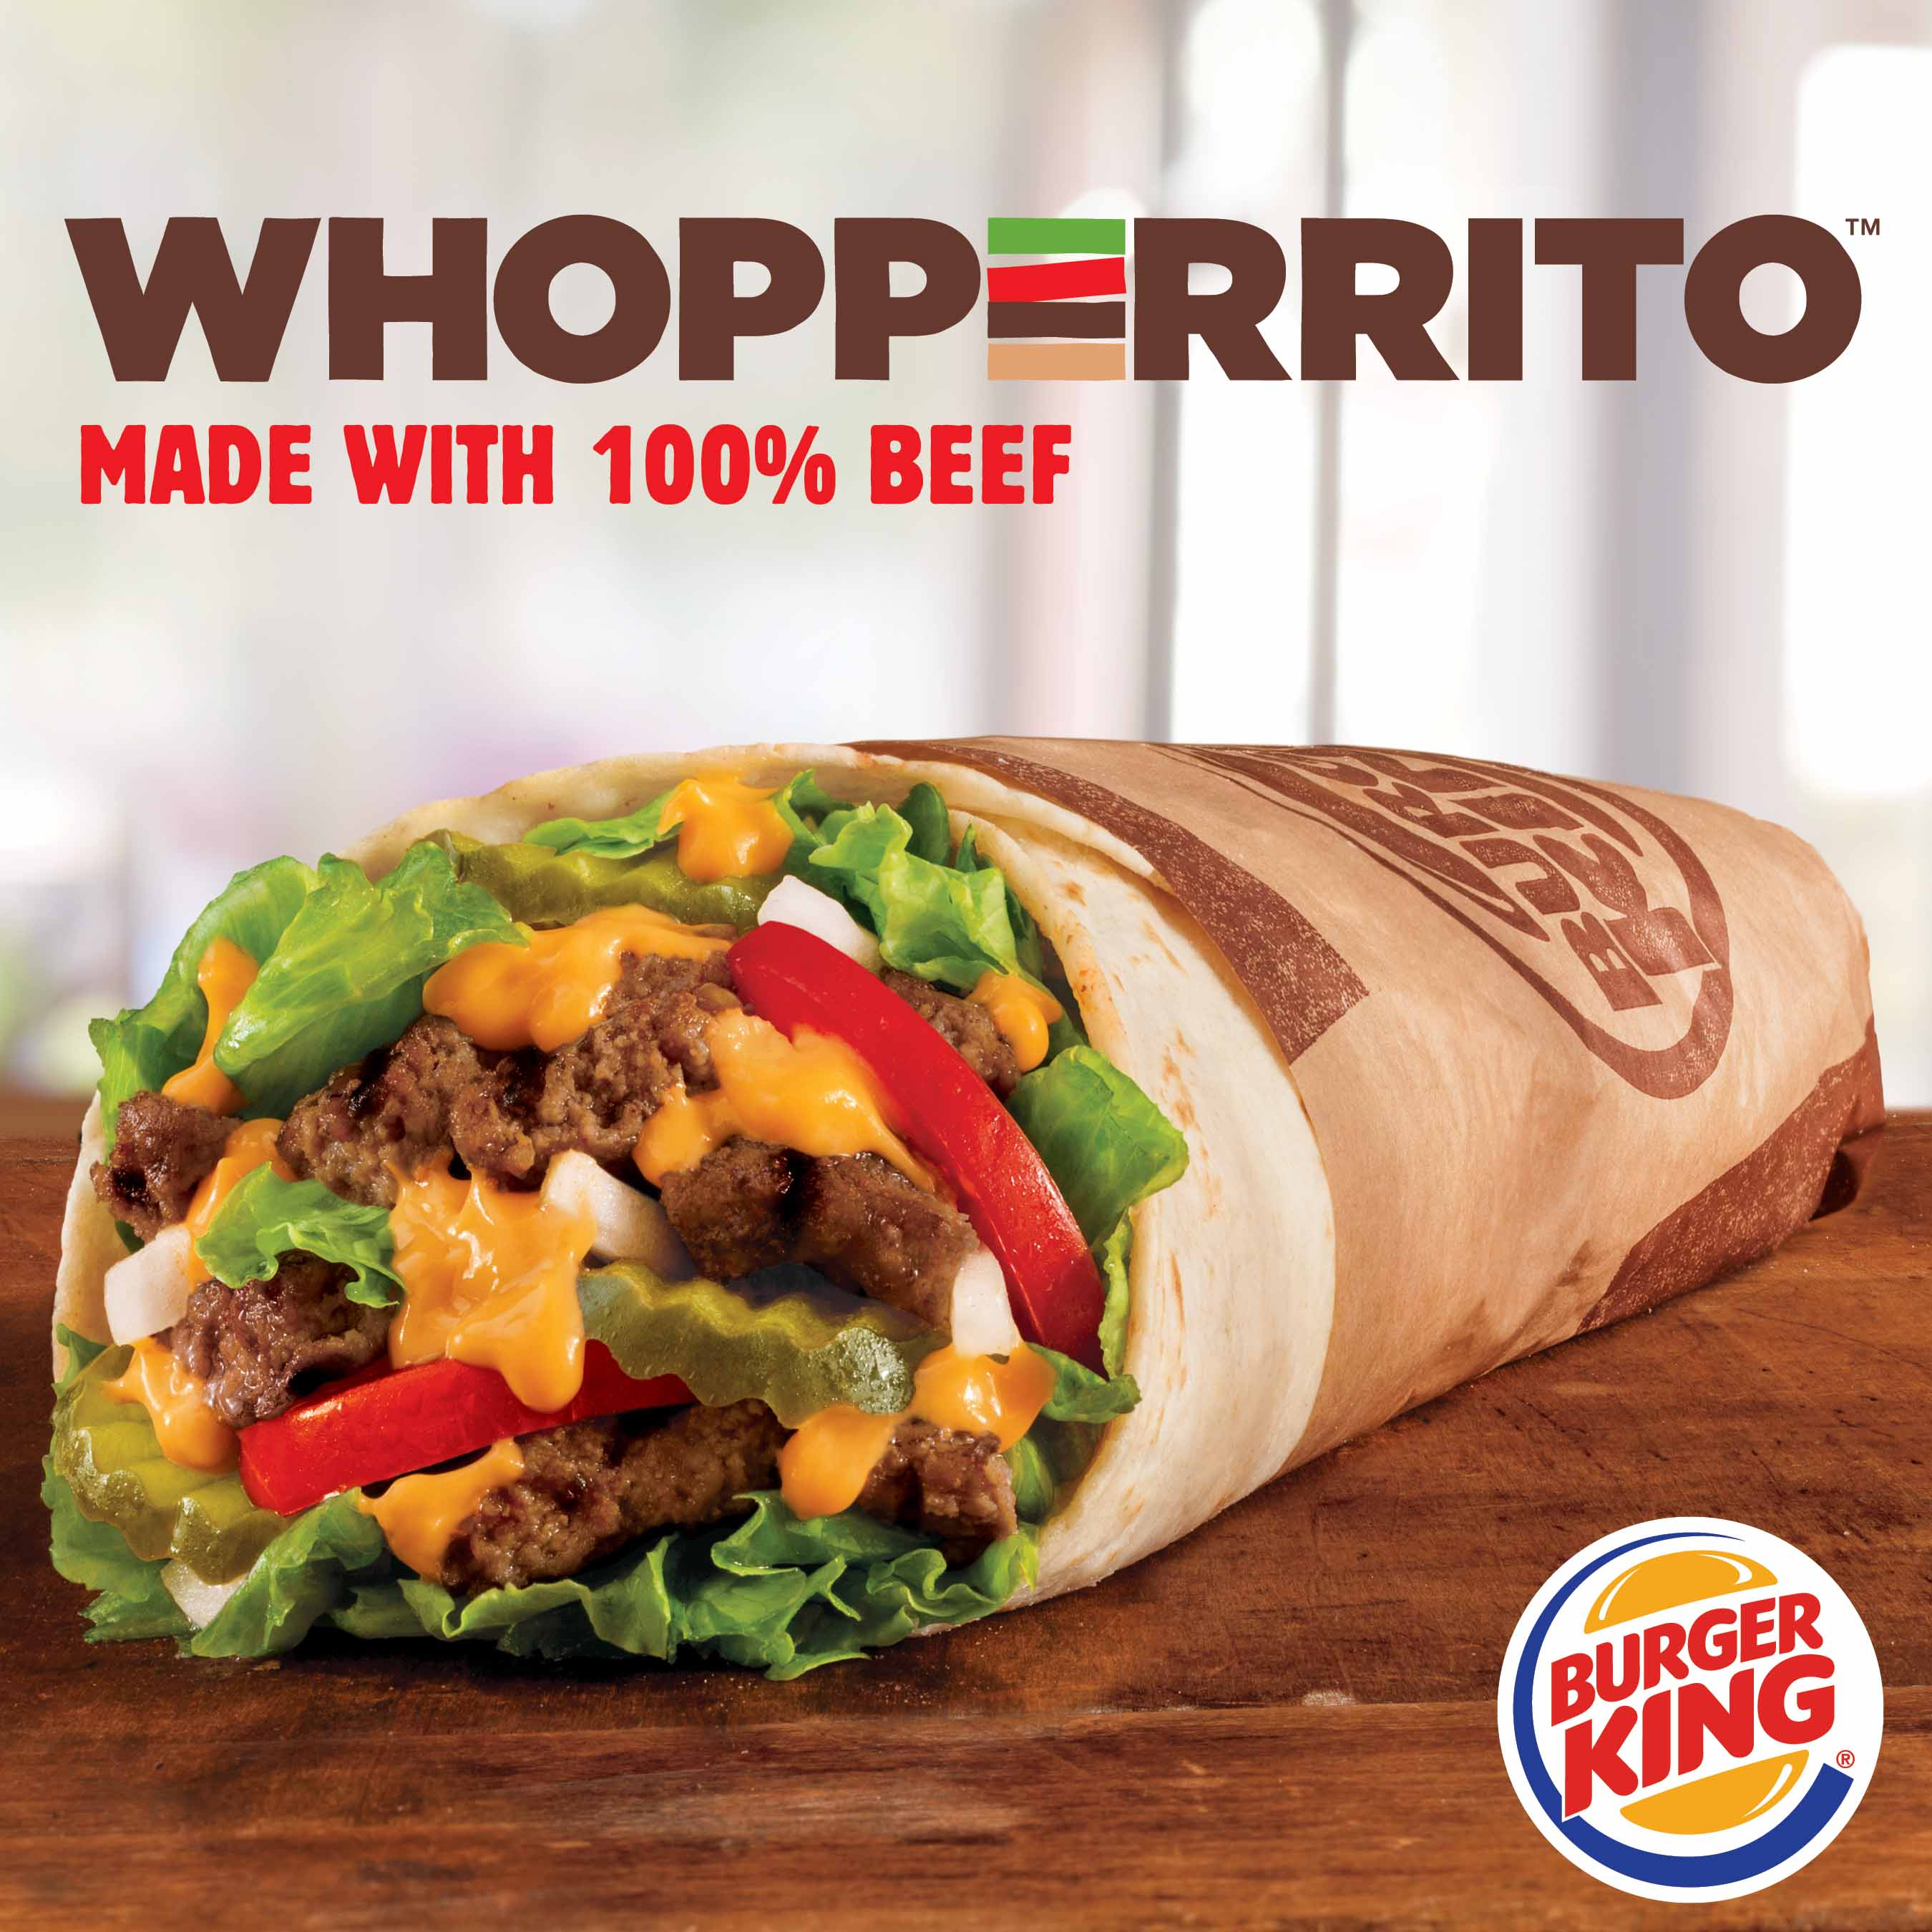 marketing environment of burger king Free essay: burger king's core competency is fast food restaurant franchises  specializing in made to order, flame-broiled hamburger sandwiches, particularly.